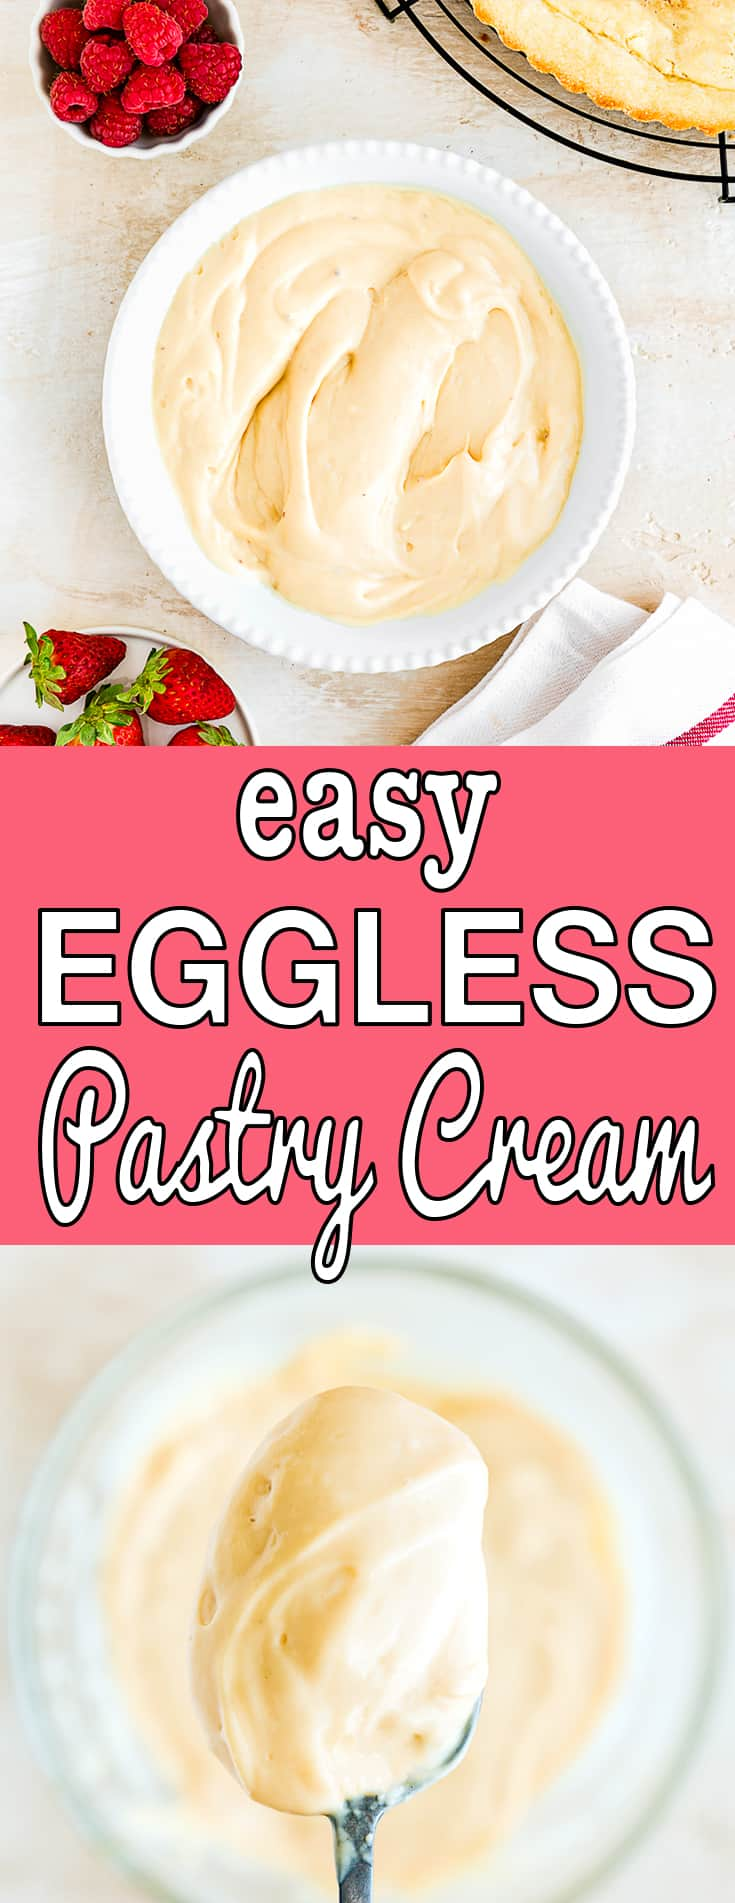 Easy Eggless Pastry Cream in a plate with berries and tart shell with descriptive text